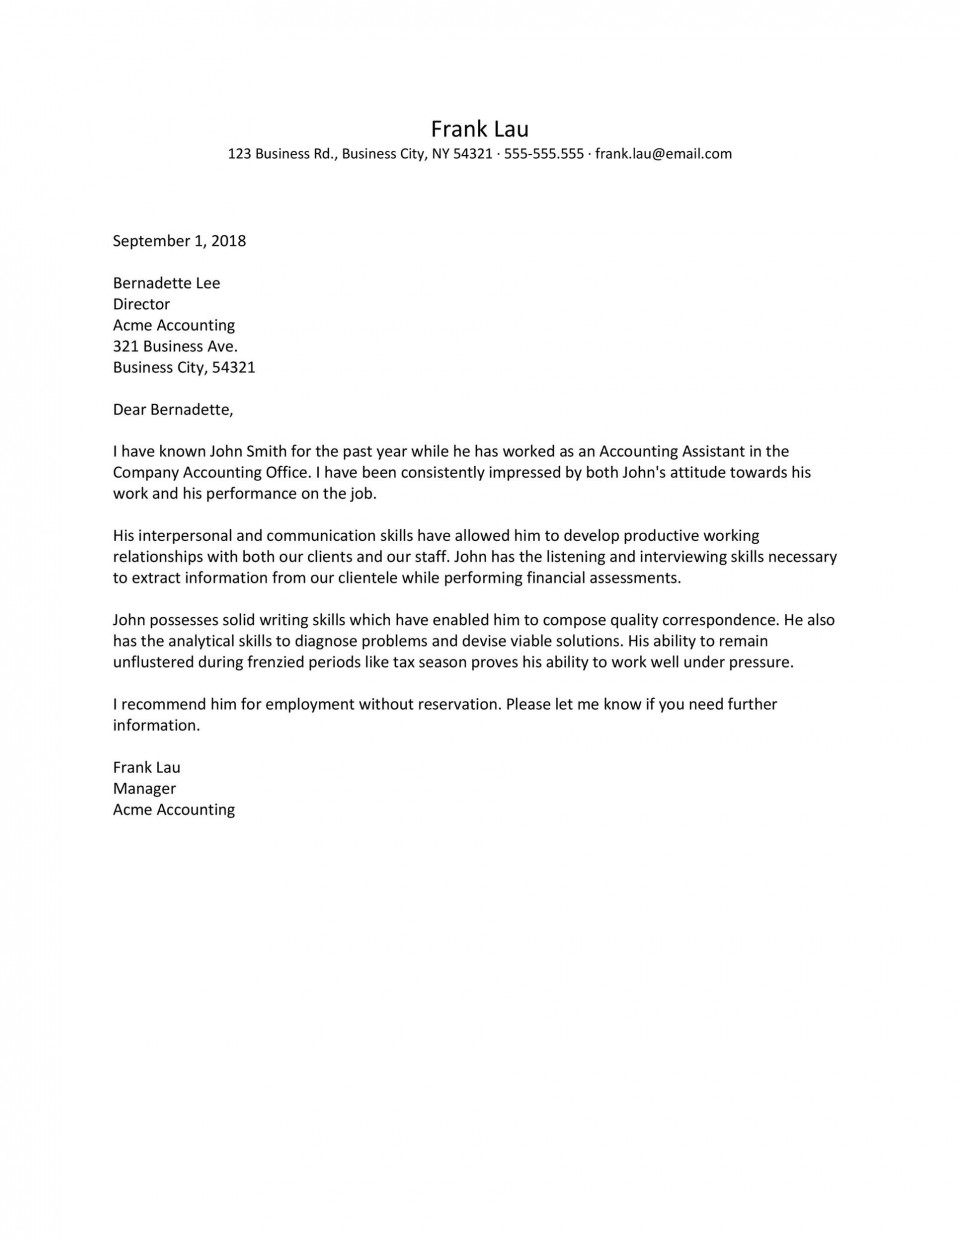 003 Astounding Free Reference Letter Template From Employer Picture  For Employment Word960